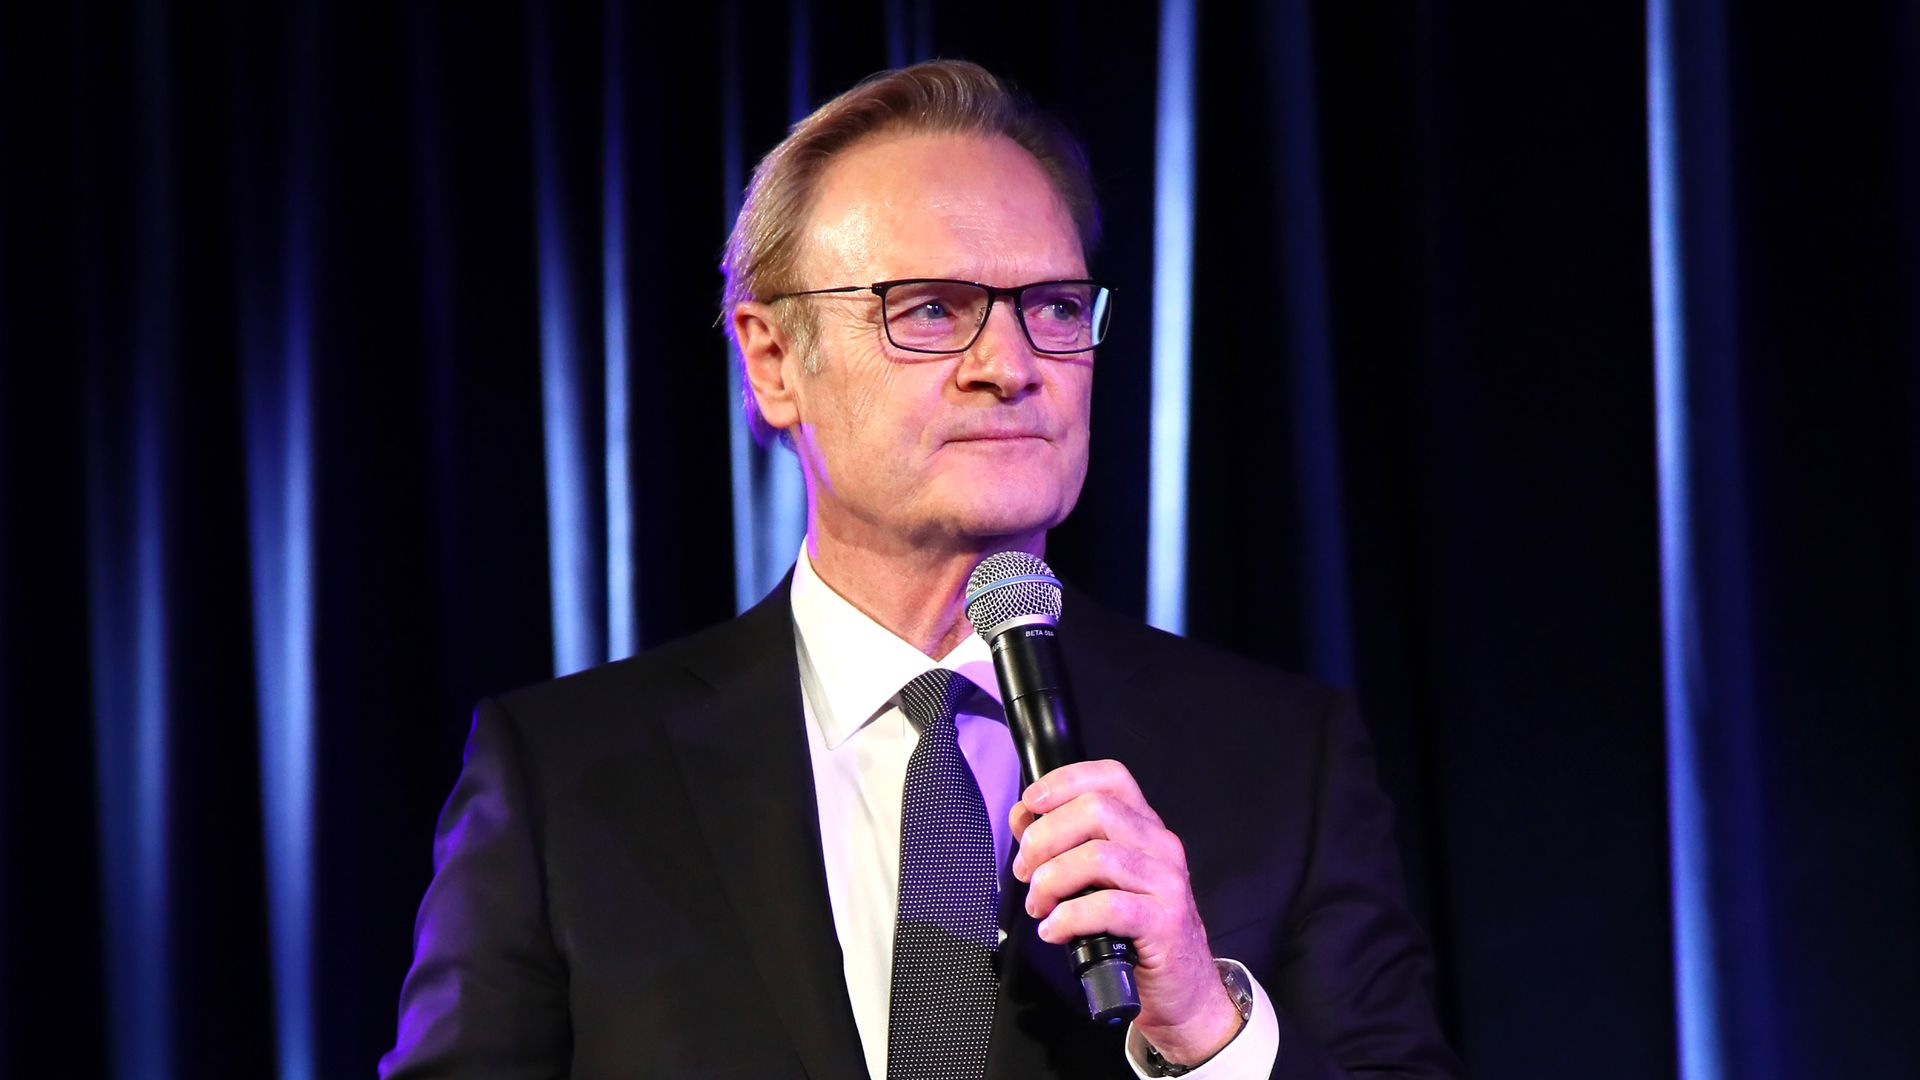 TV Anchor Lawrence O'Donnell speaks at The Hospital for Special Surgery 35th Tribute Dinner at the American Museum of Natural History on June 4